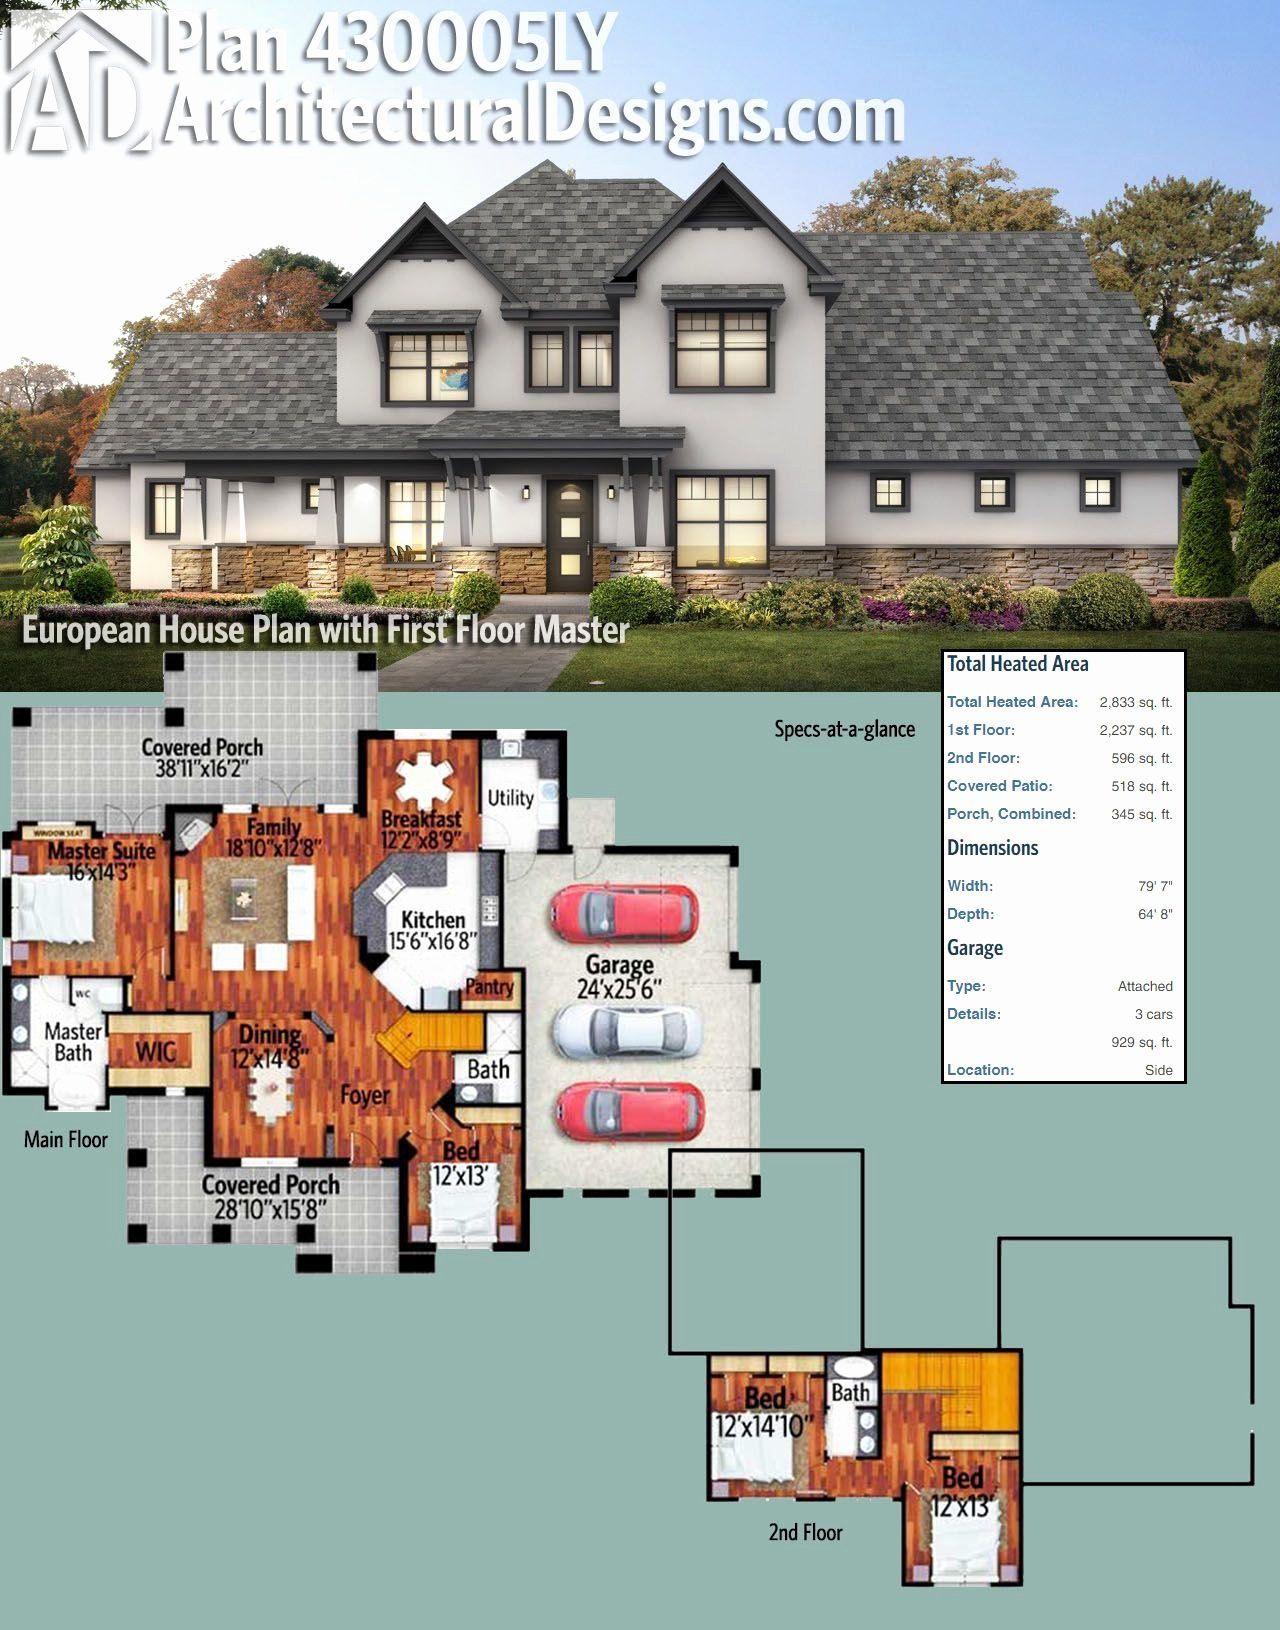 1st Floor Master House Plans Beautiful Plan Ly European House Plan With First Floor Master House Plans Craftsman Bungalow House Plans House Floor Plans